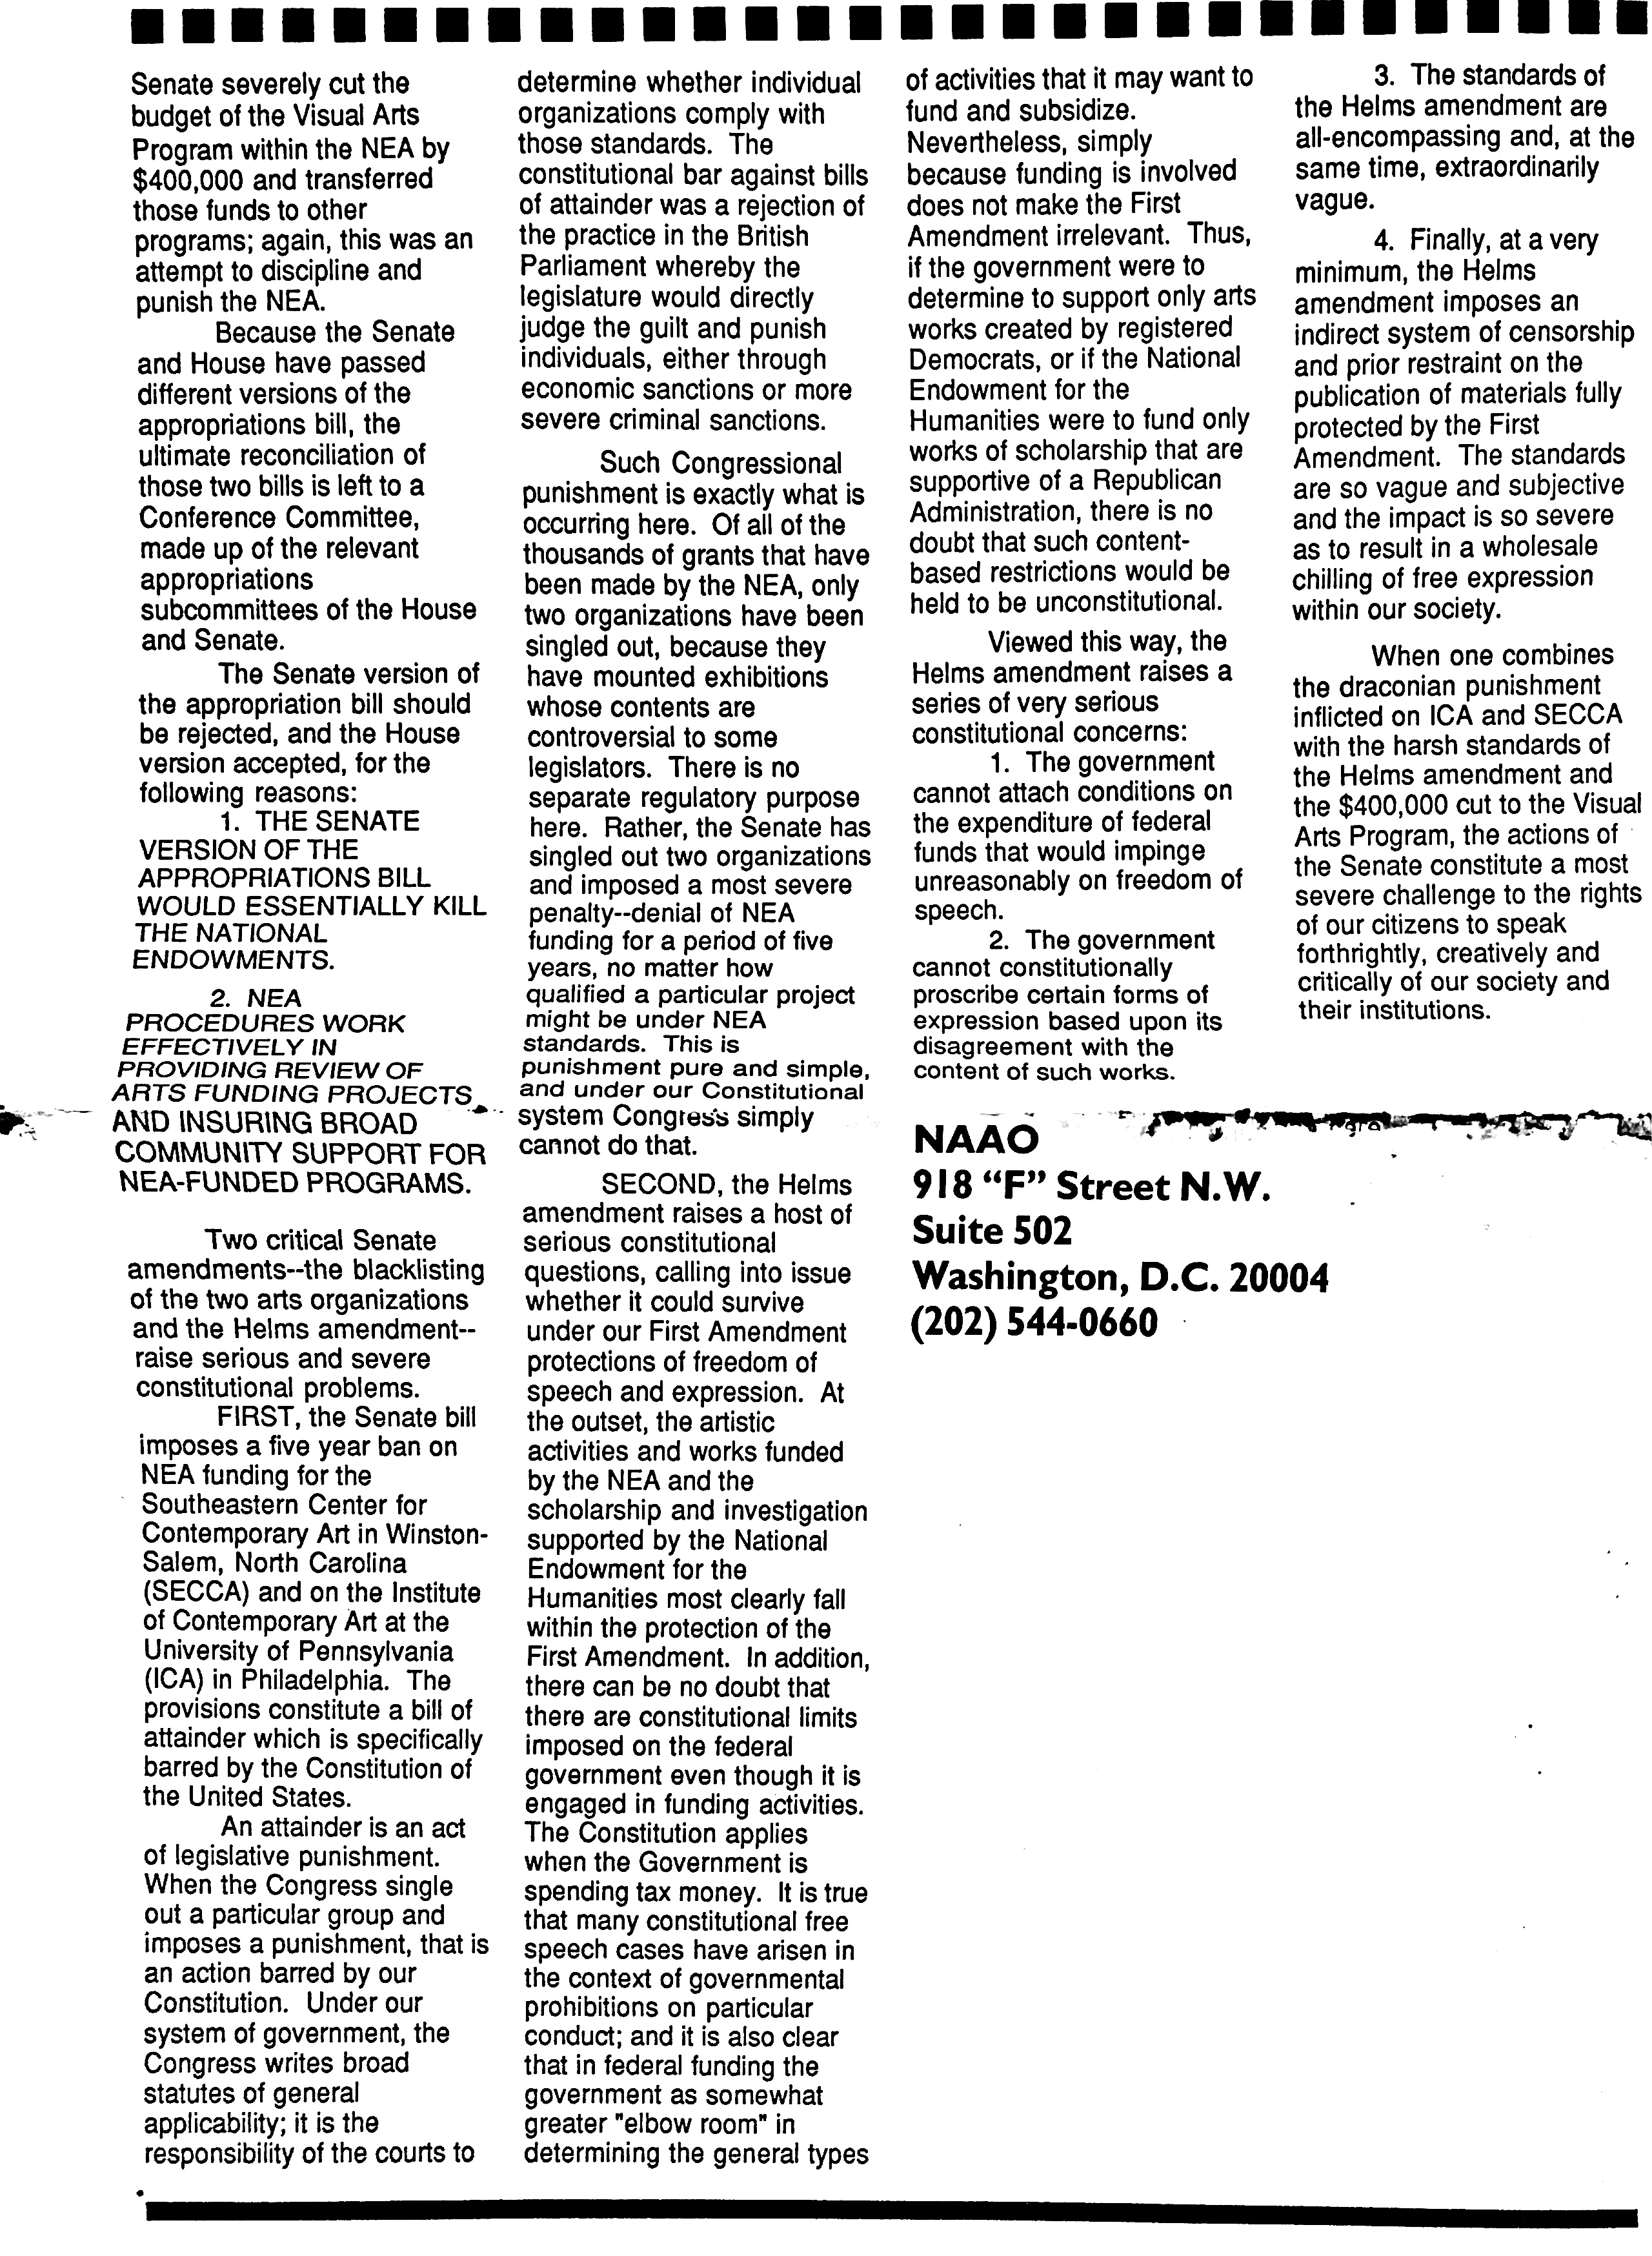 August 16, 1989 Page 4.jpg